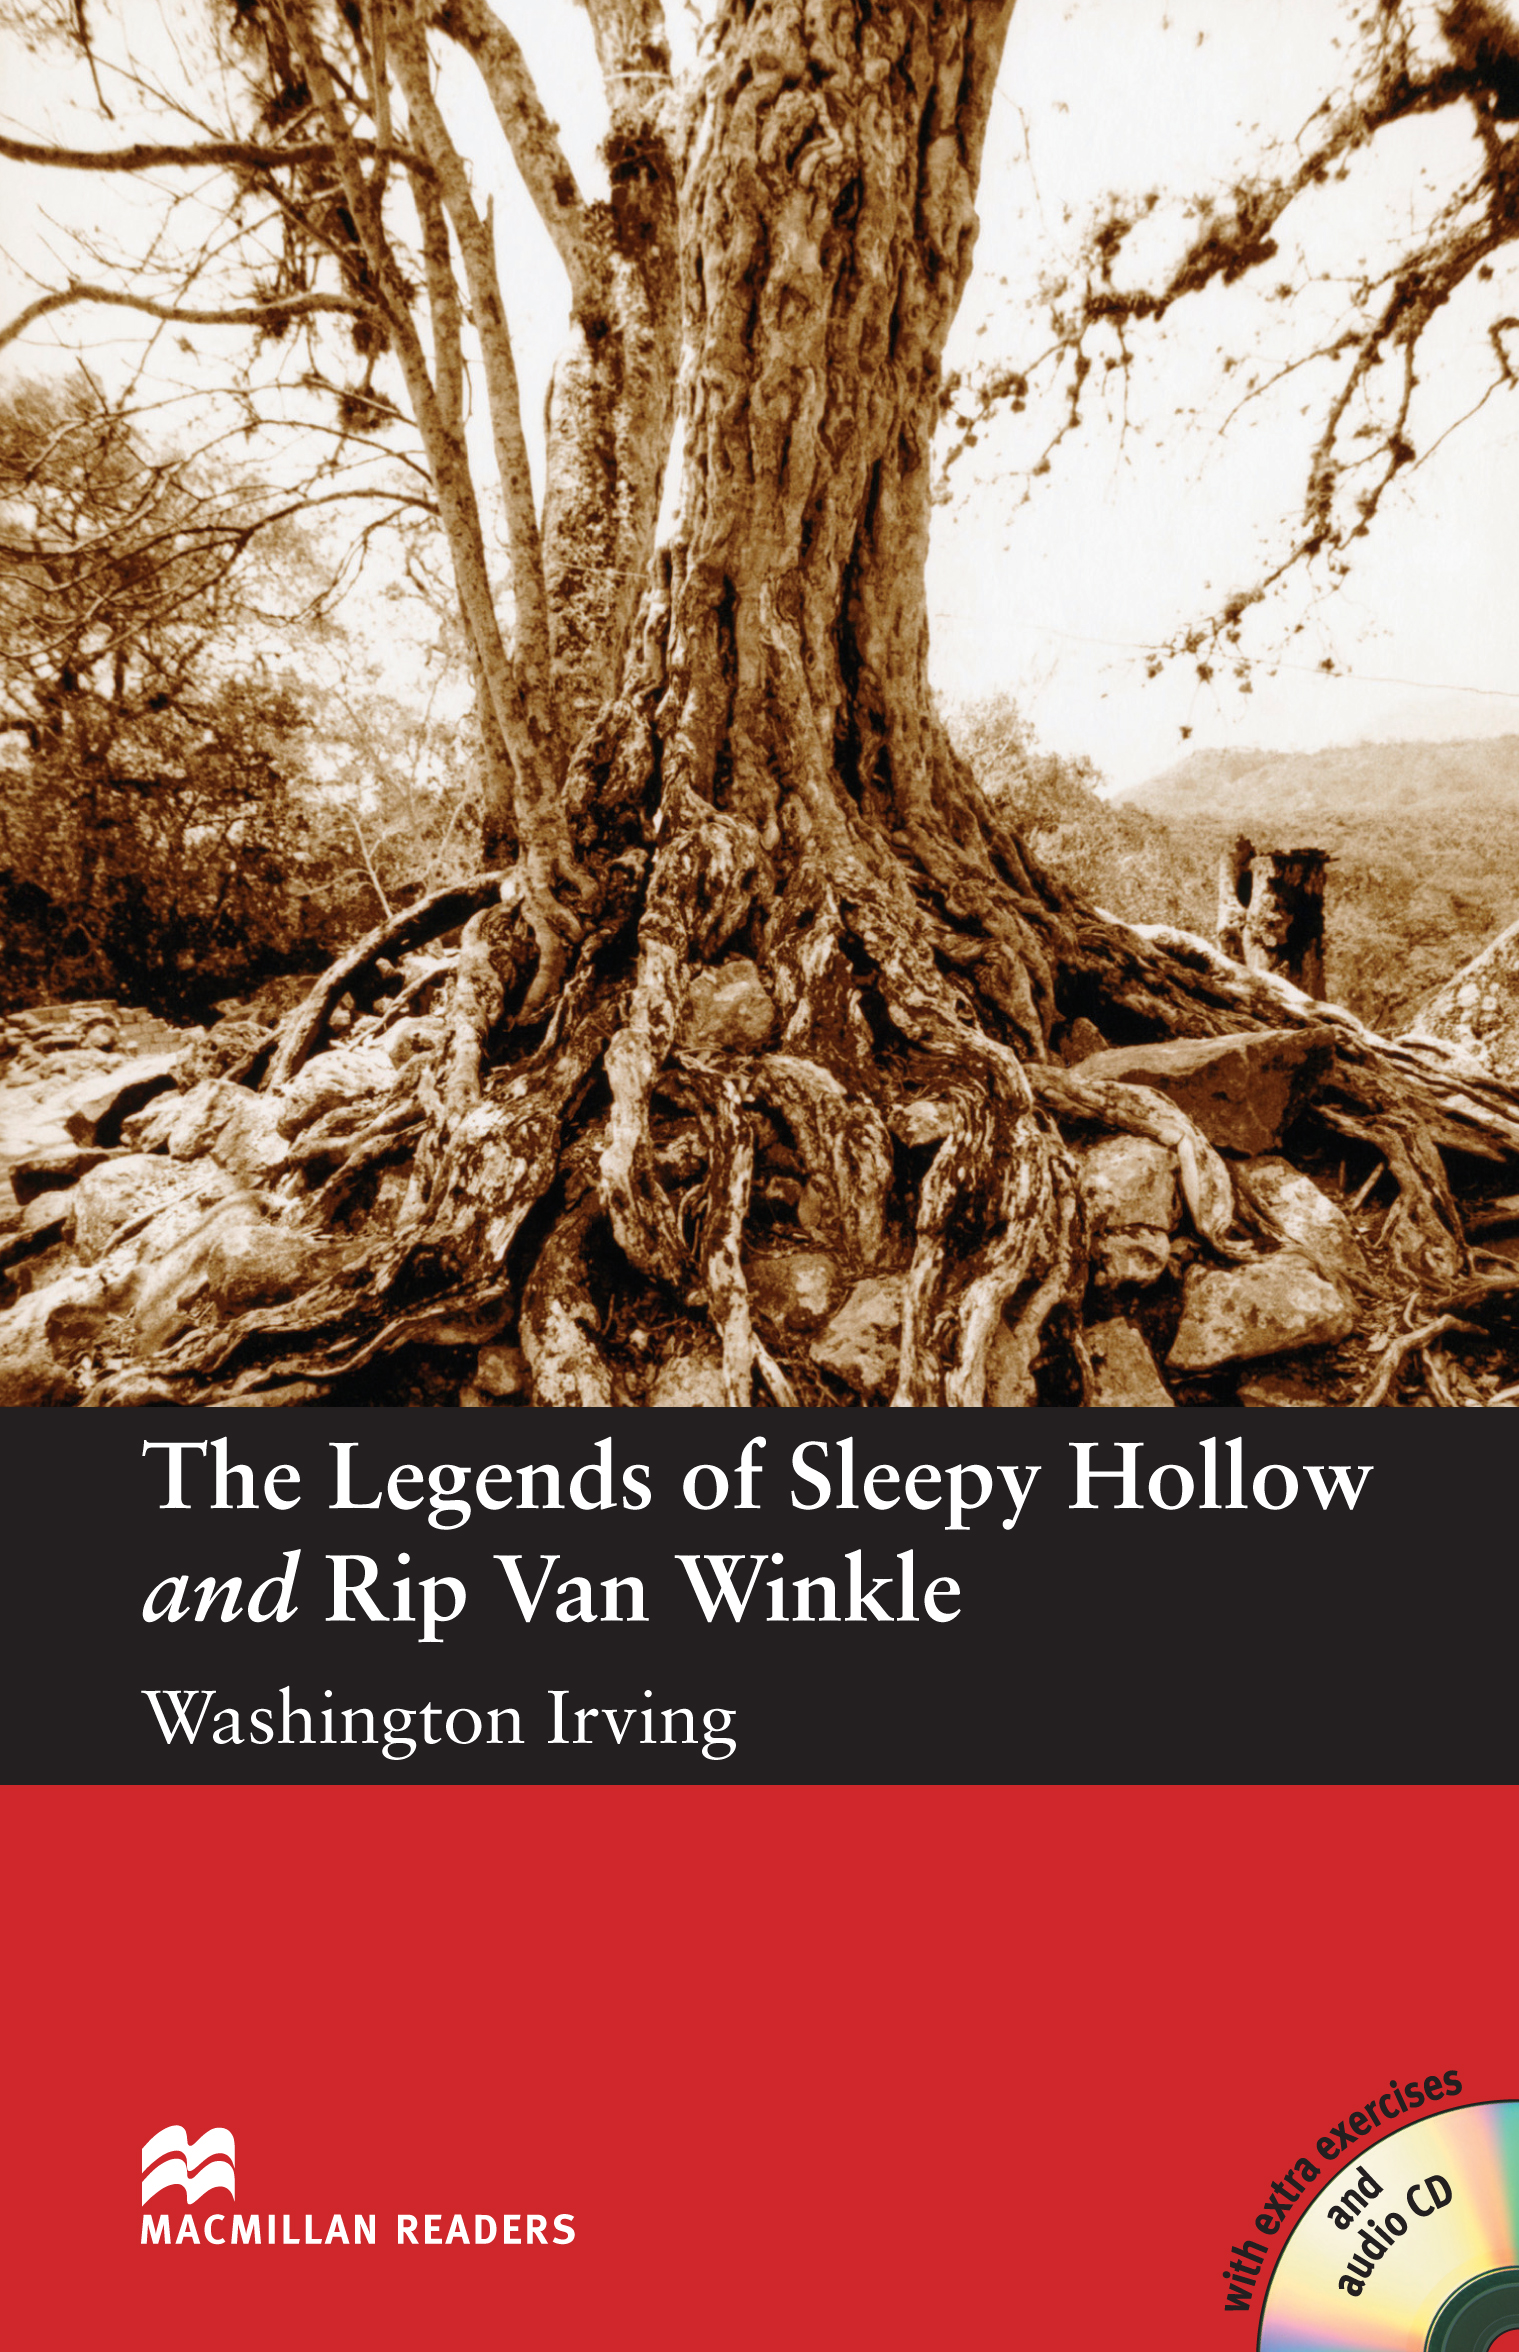 Macmillan Readers: The Legends of Sleepy Hollow and Rip Van Winkle Pack